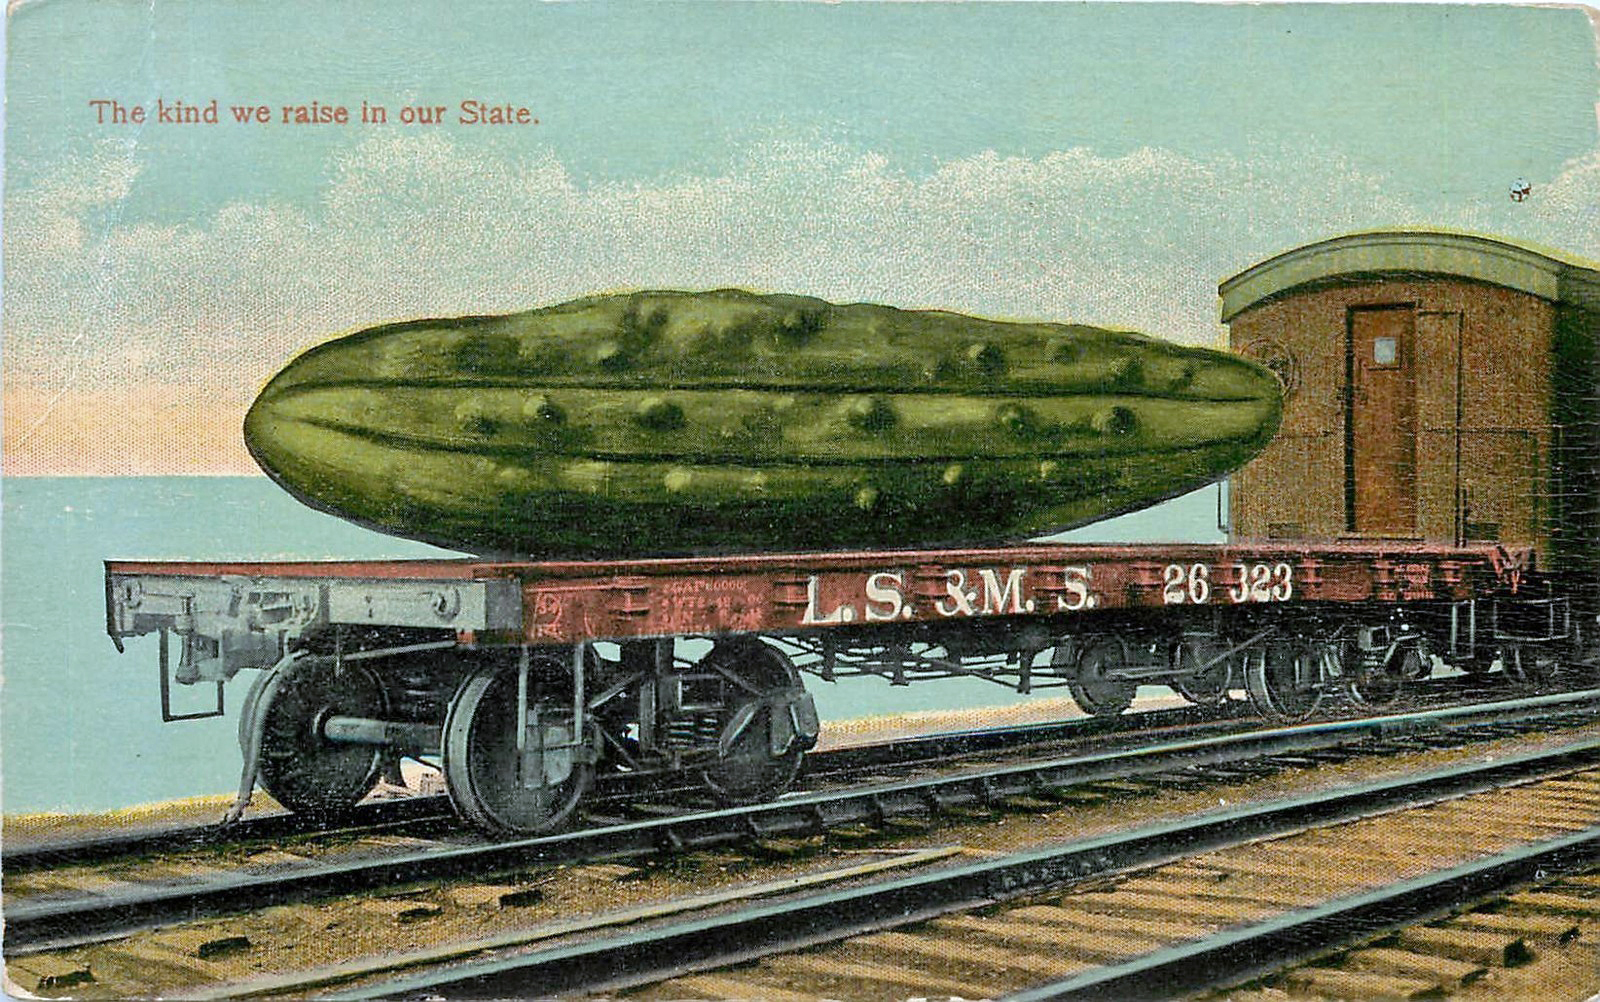 During the early 20th century, 'tall-tale' postcards were used to create the Midwest's identity as a place of agricultural abundance. (Courtesy amusingplanet.com)